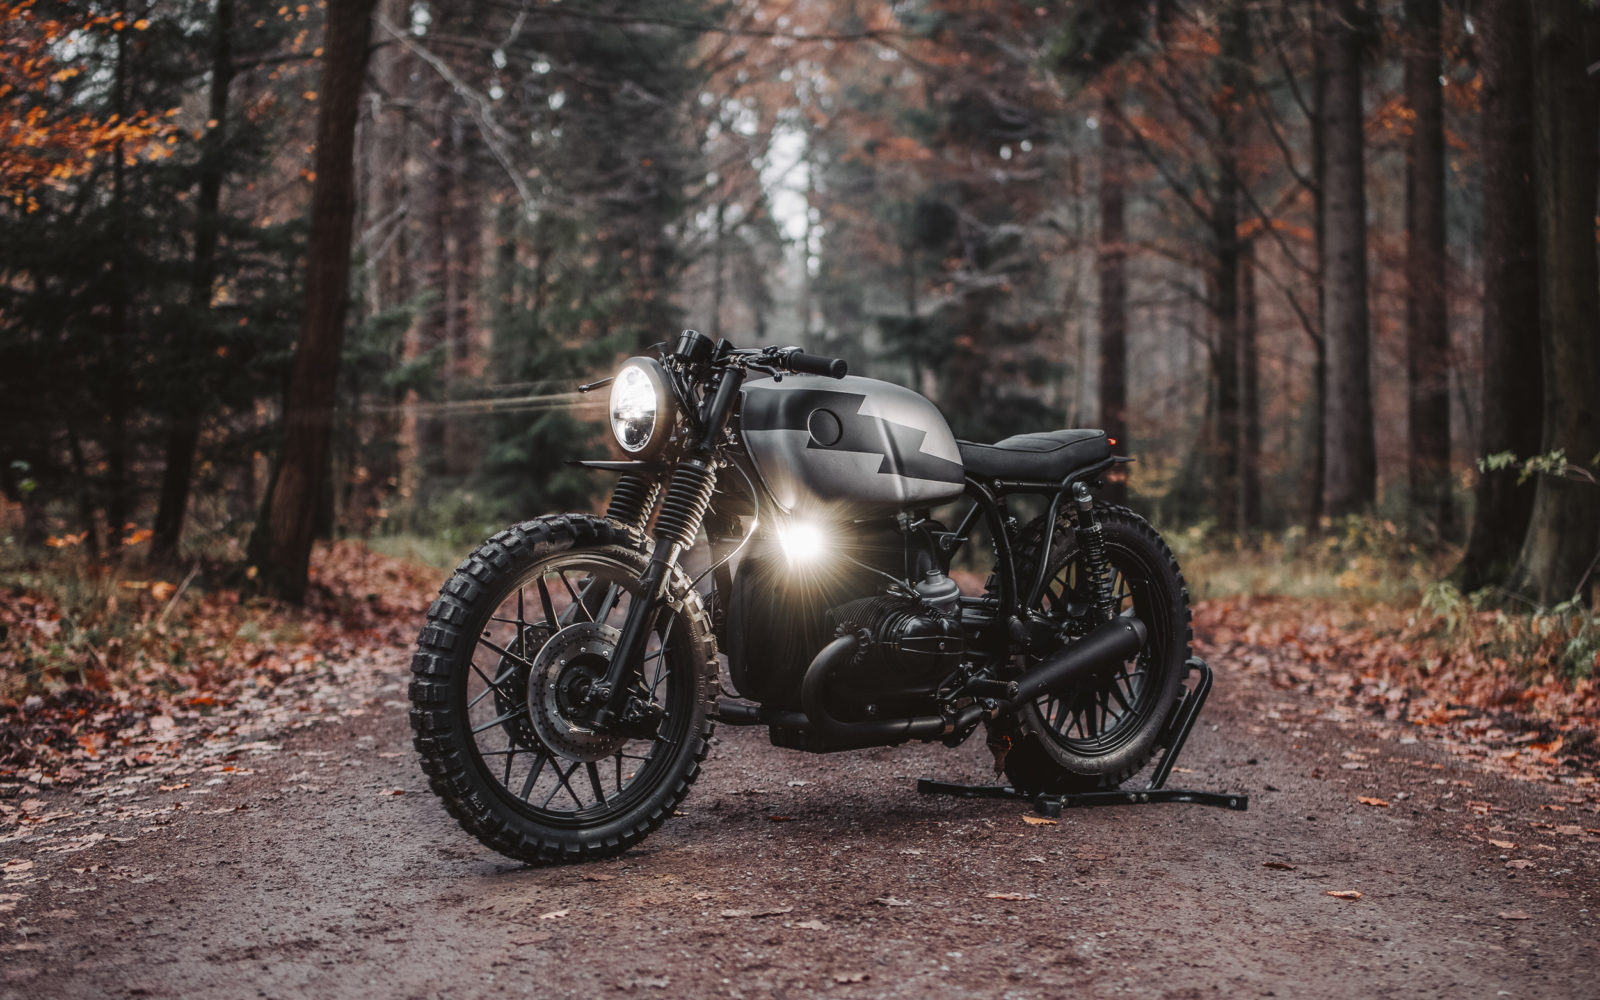 BMW Cafe racer hookie motogadget R100